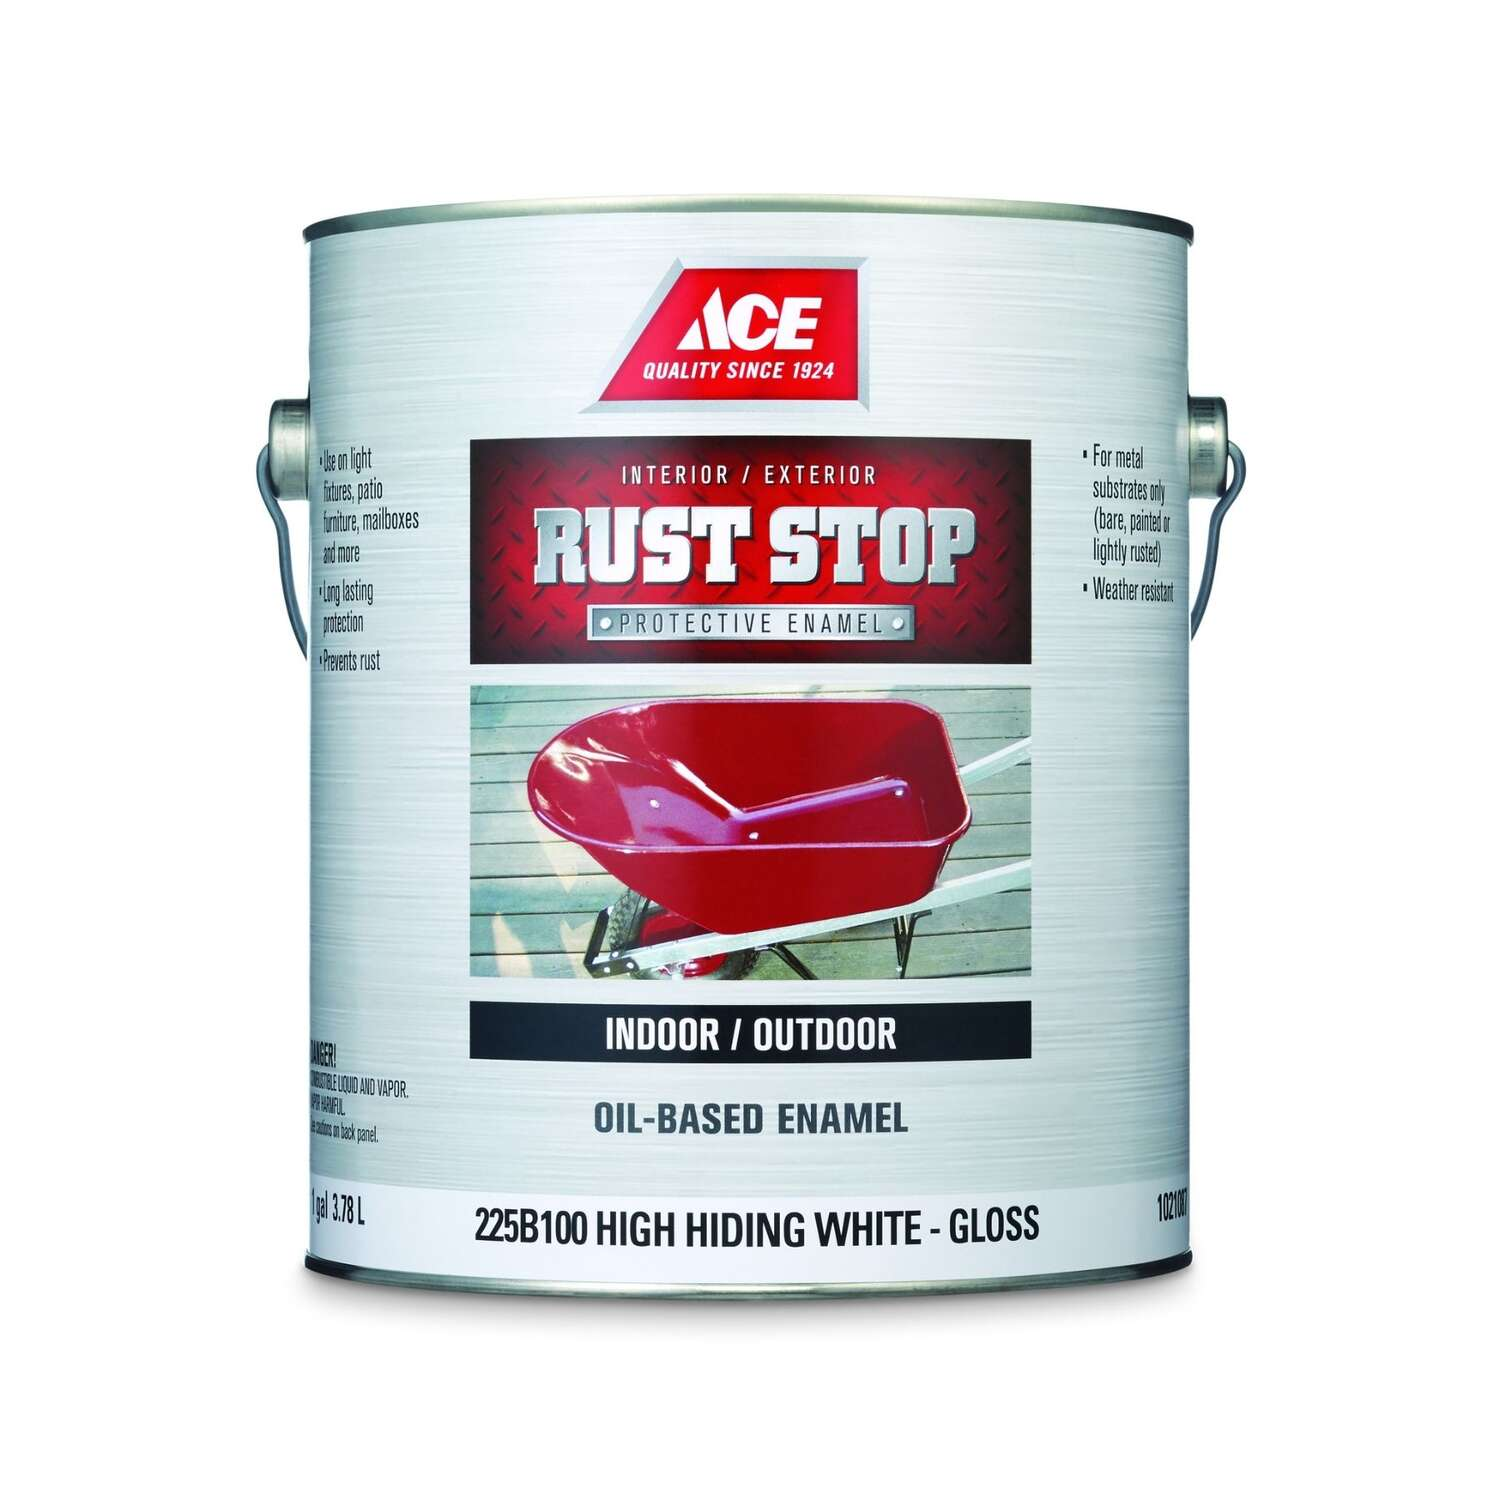 Ace  Rust Stop  Indoor/Outdoor  Gloss  High-Hiding White  Oil-Based Enamel  Rust Preventative Paint